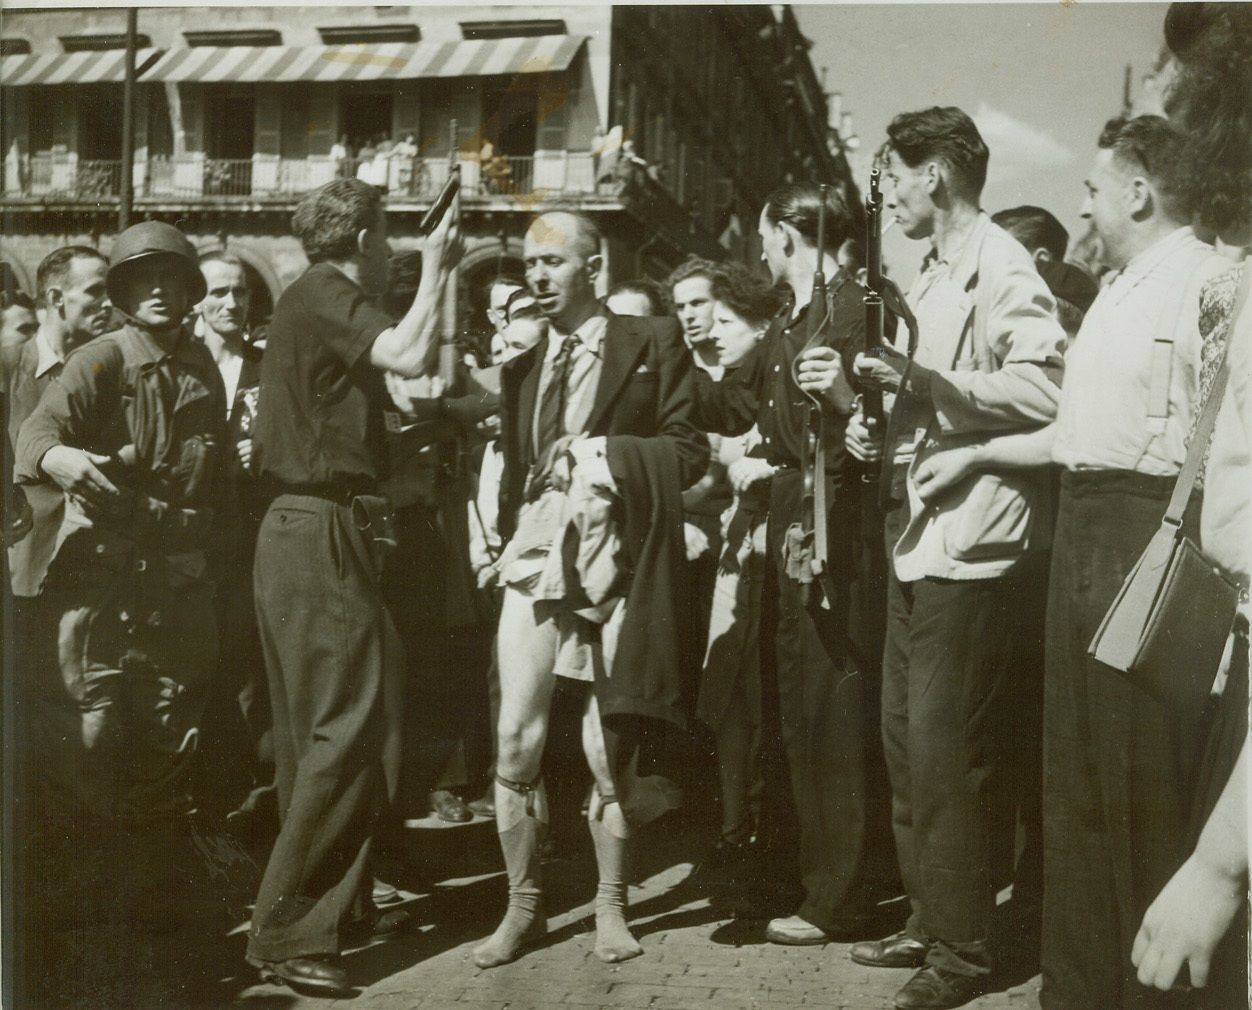 """Collaborationist Who Needed """"Protective Custody"""", 8/28/1944. Paris—This collaborationist who lost his pants to an angry group of Parisians is shown being saved by the F.F.I. and taken into their protective custody. Credit: ACME photo by Bert Brandt for the war picture pool;"""